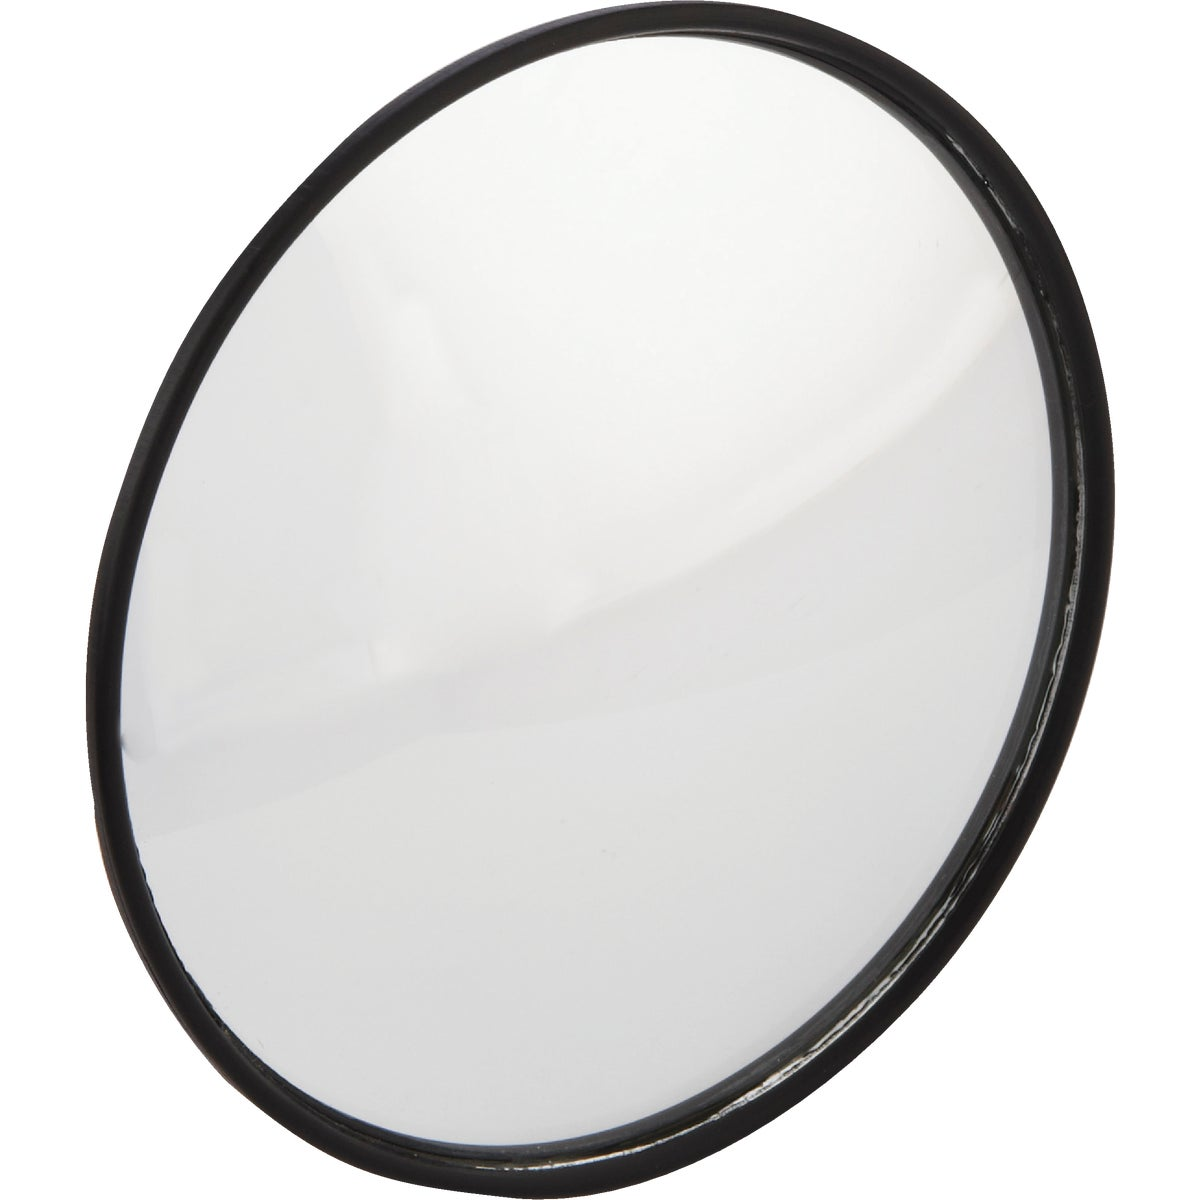 "3""WIDE ANGLE SPOT MIRROR - 71113 by Custom Accessories"